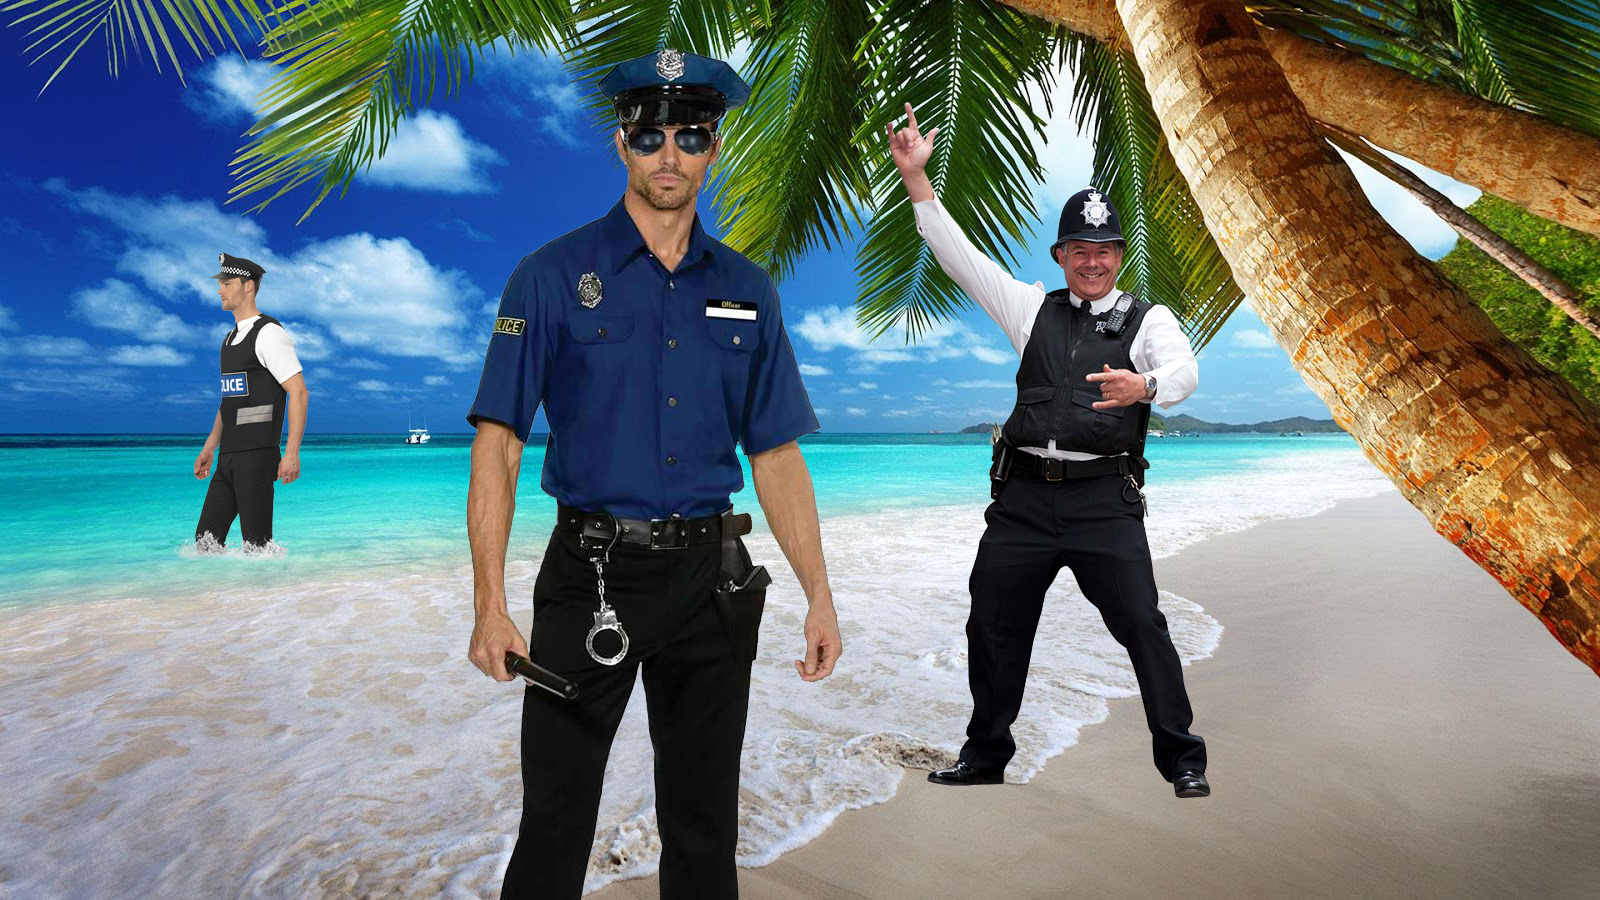 cop-vacation1.png